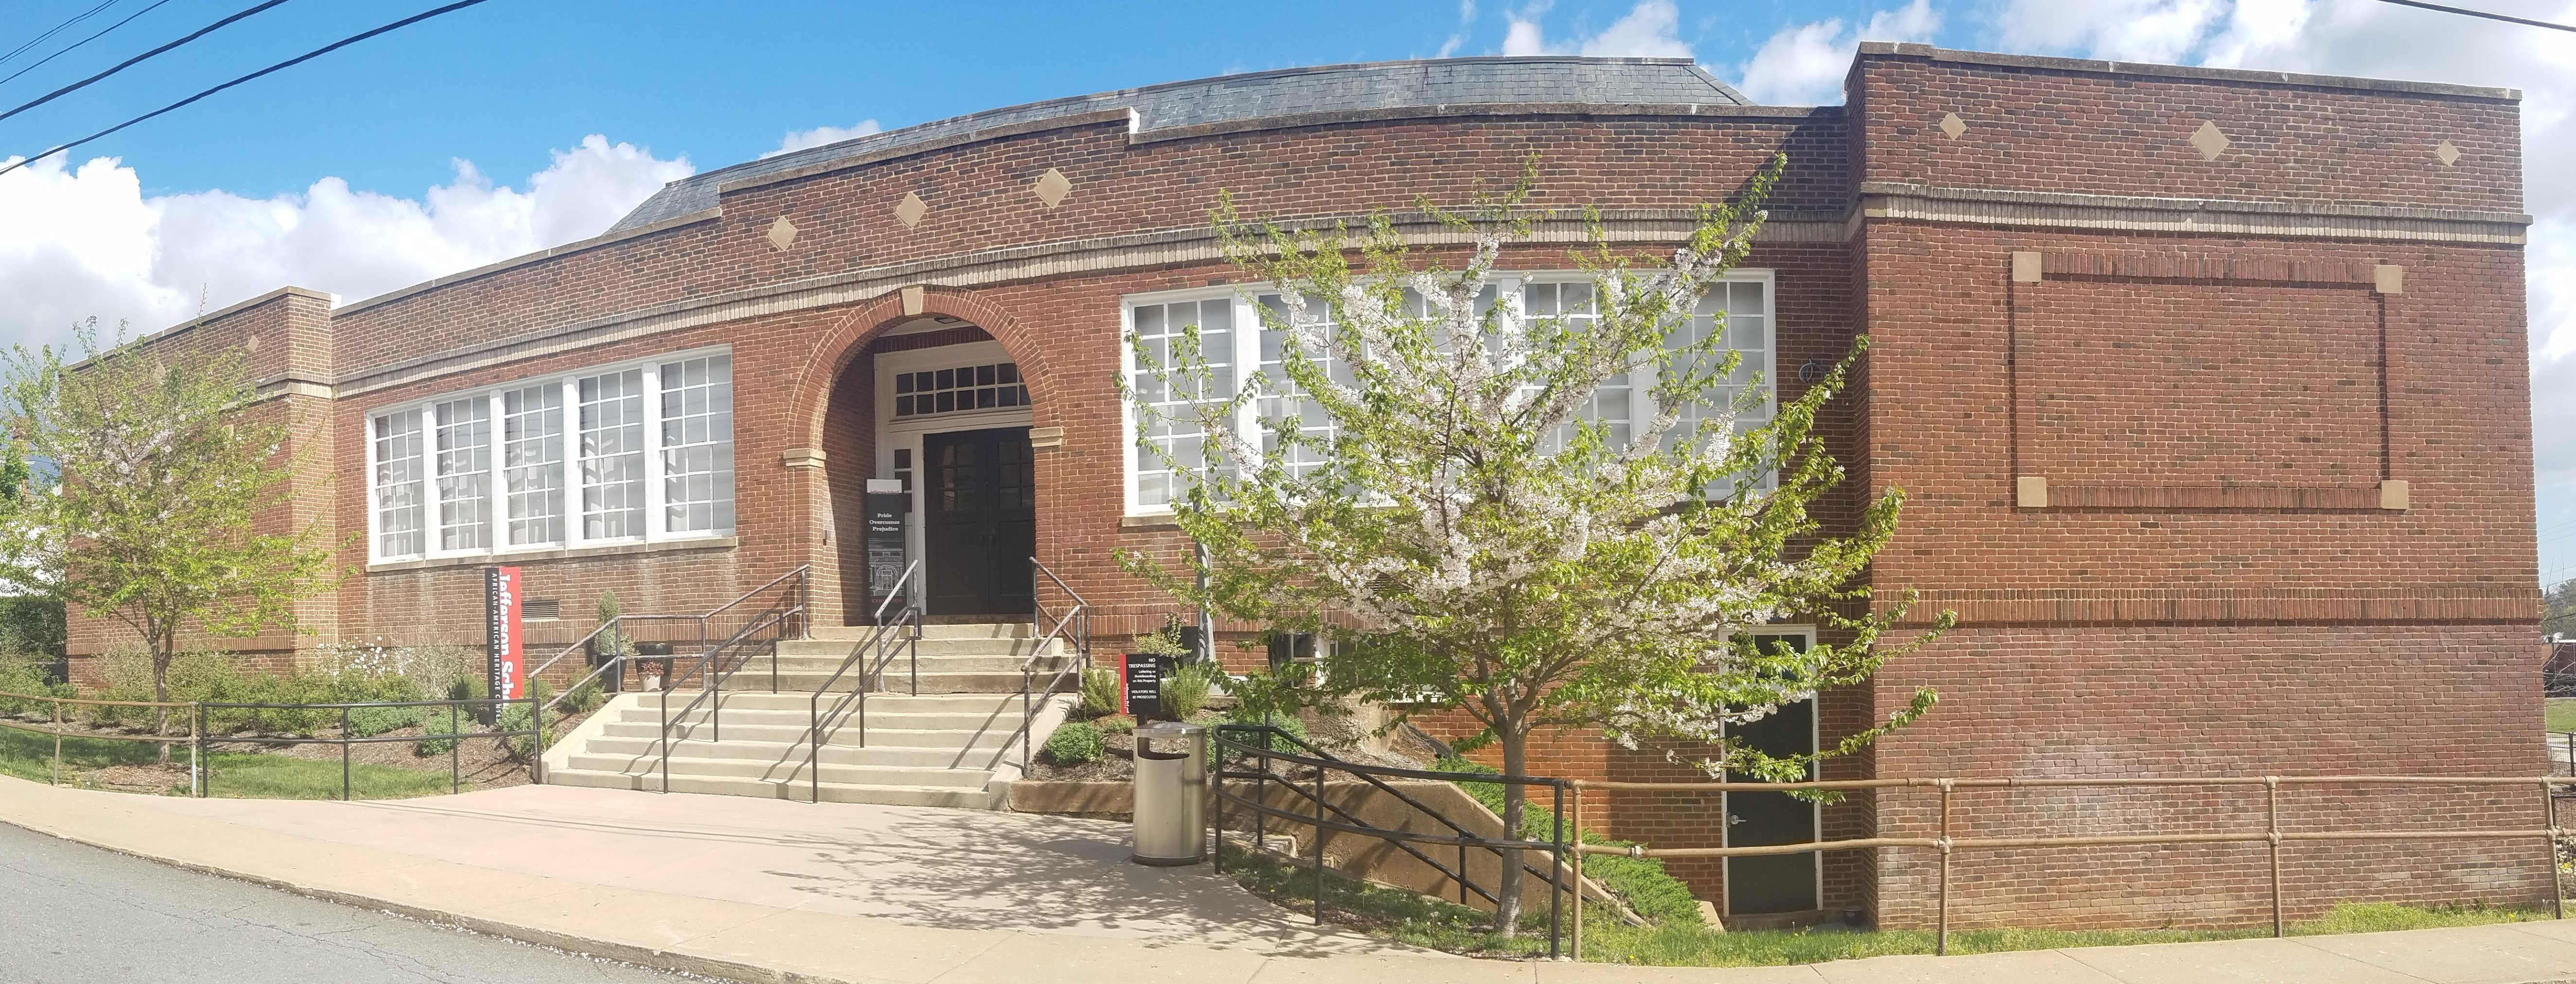 Commerce Street entrance to Jefferson School African American Heritage Center